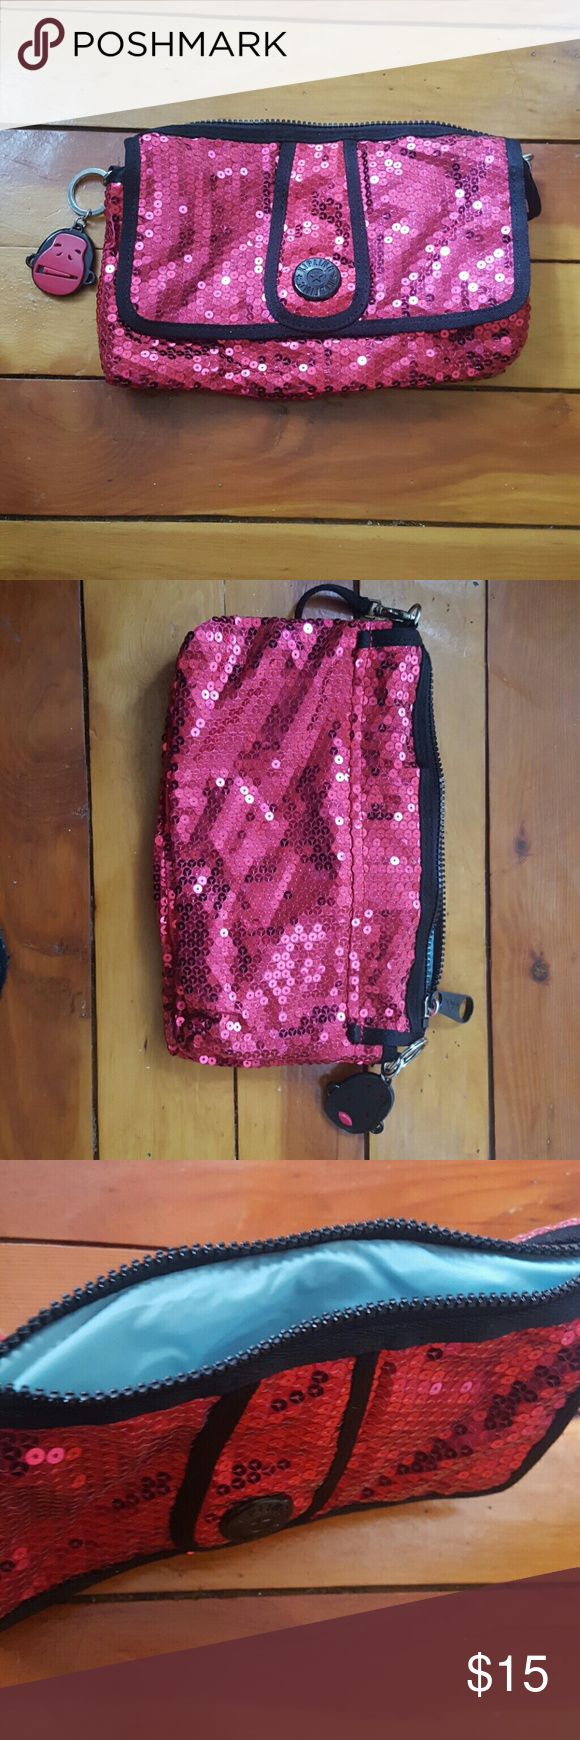 Kipling redish pink glitter clutch Like new. Missing monkey face on one side of keychain. 2 inside pockets, 1 outside zipper with baby blue accent. Kipling Bags Clutches & Wristlets